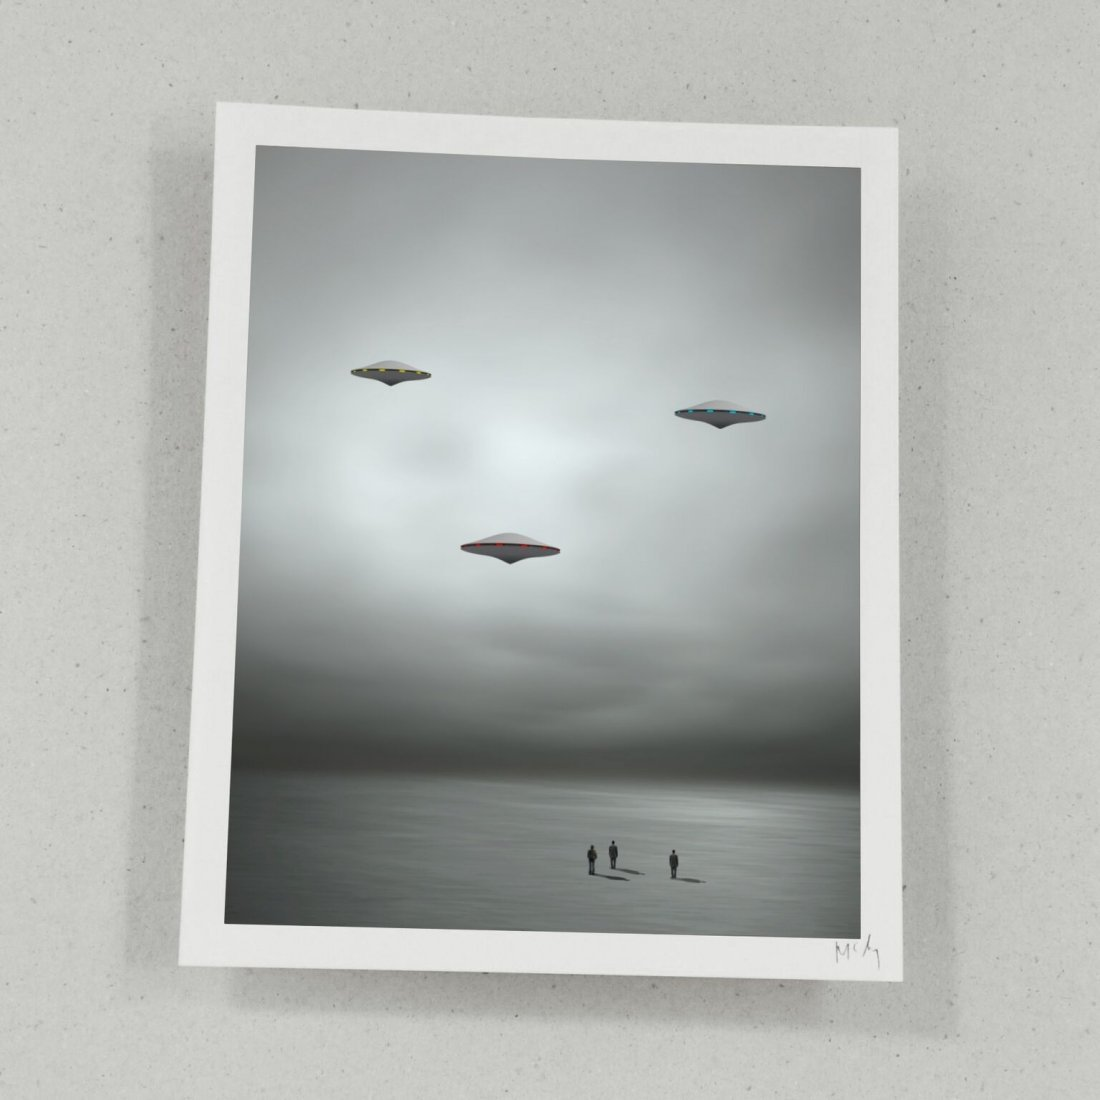 Philip Mckay - Airborne Folio - Six Prints - 6